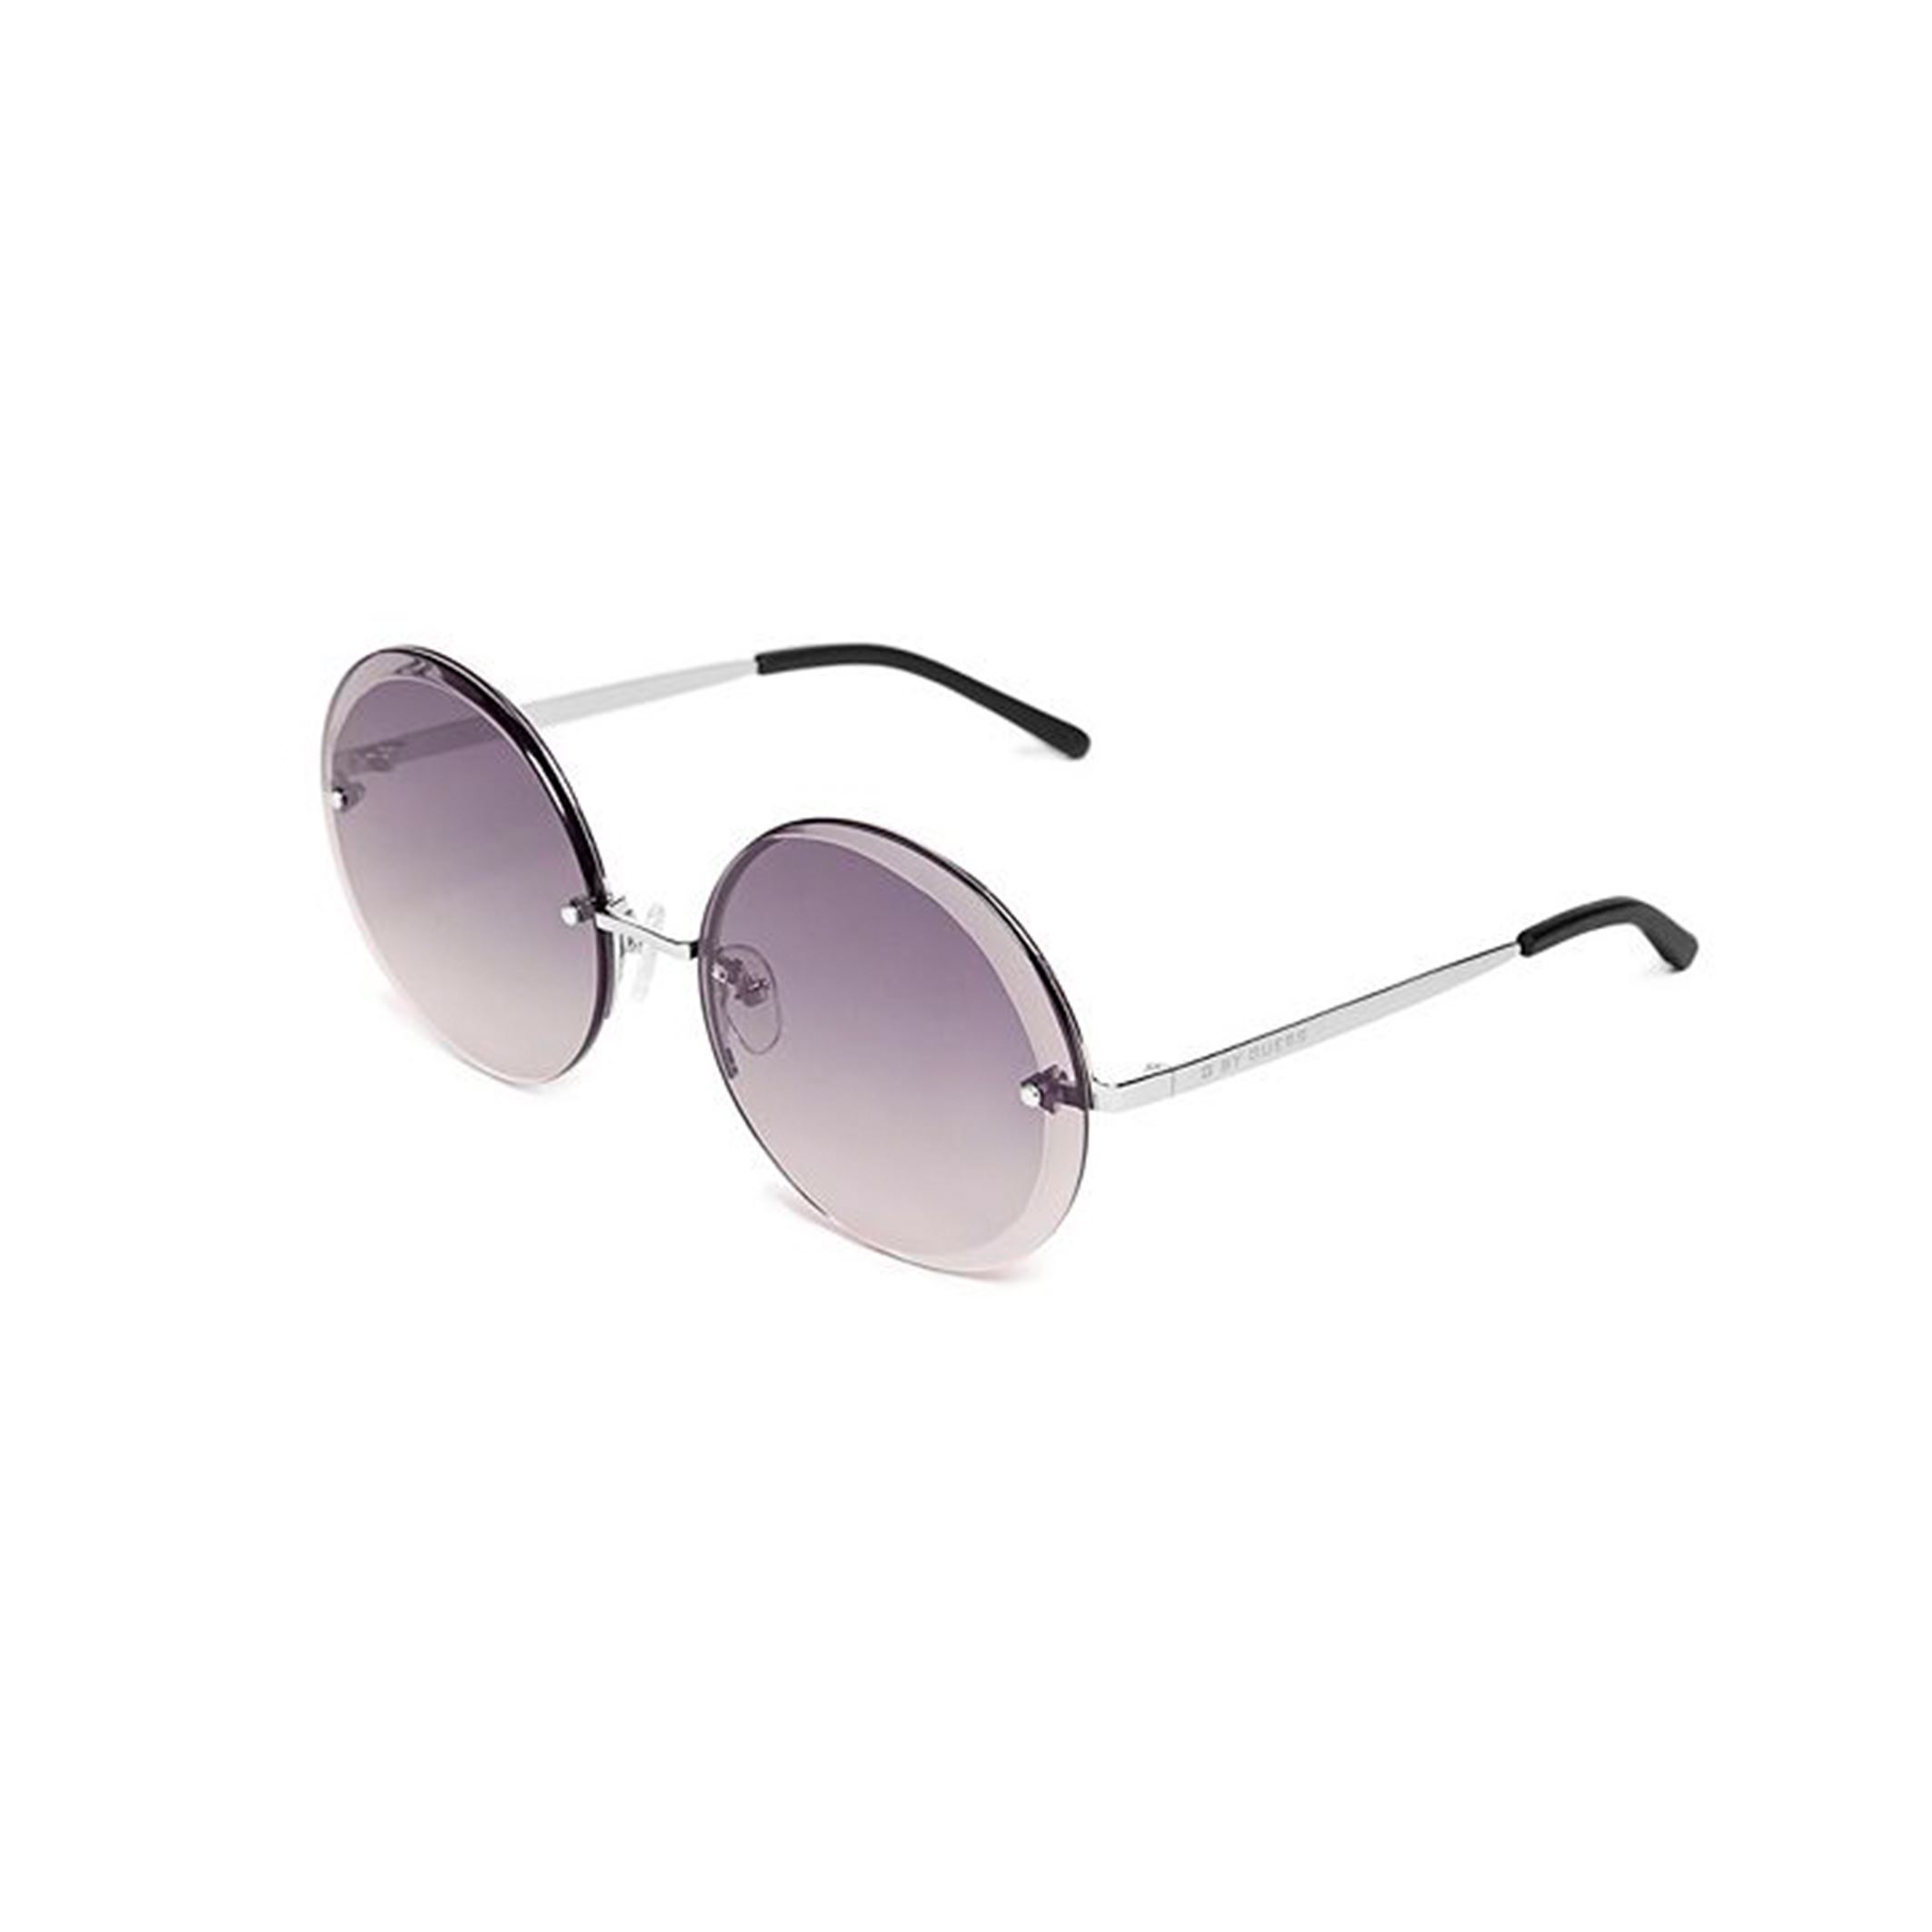 7d362f73ab Details about Guess Women s Blue Round Sunnies UV2 Protection Gradient  Lenses Metal Frame